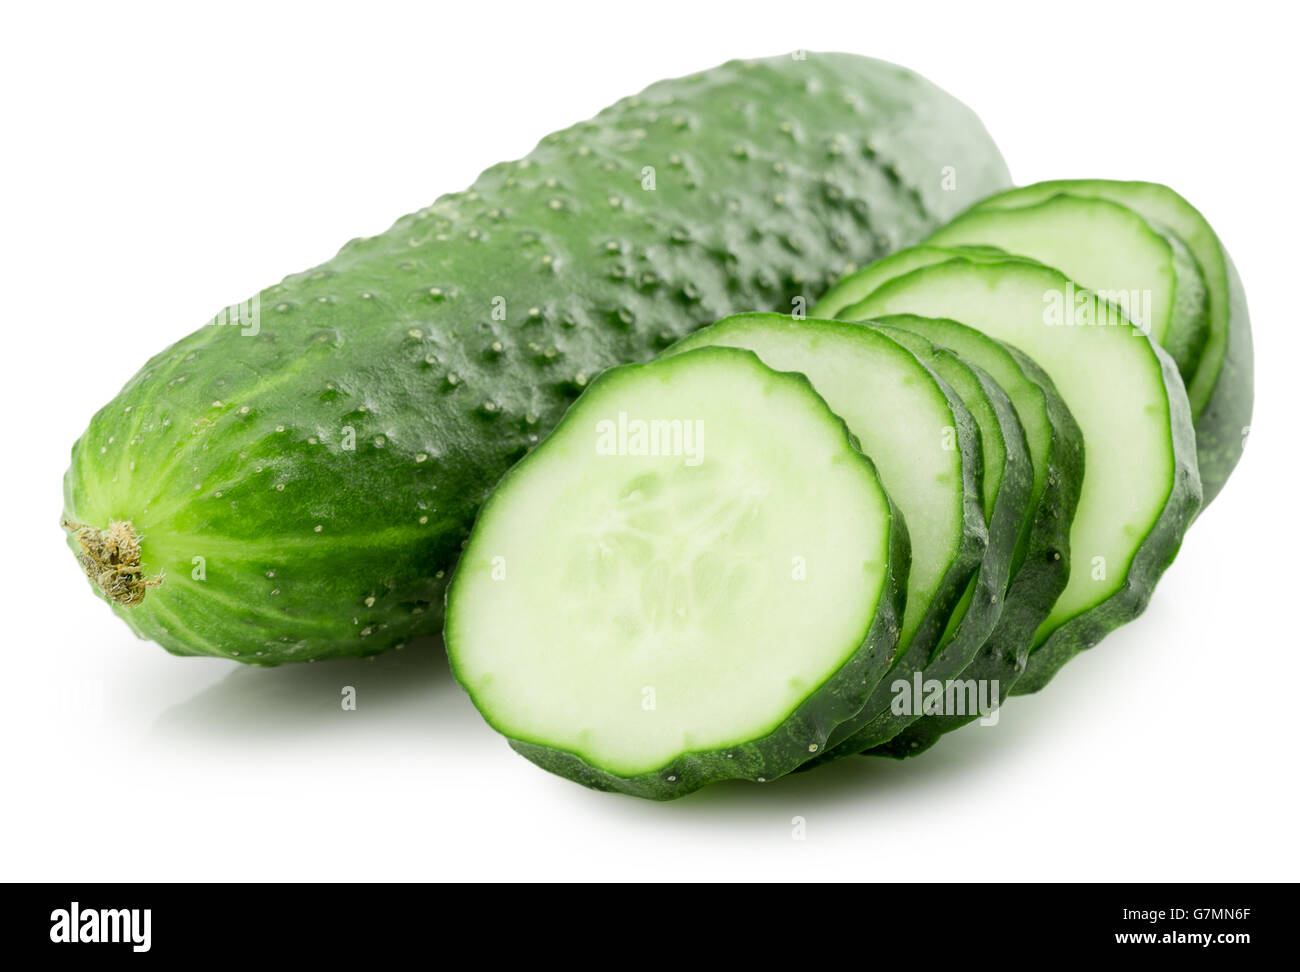 cucumber with slices isolated on the white background. - Stock Image